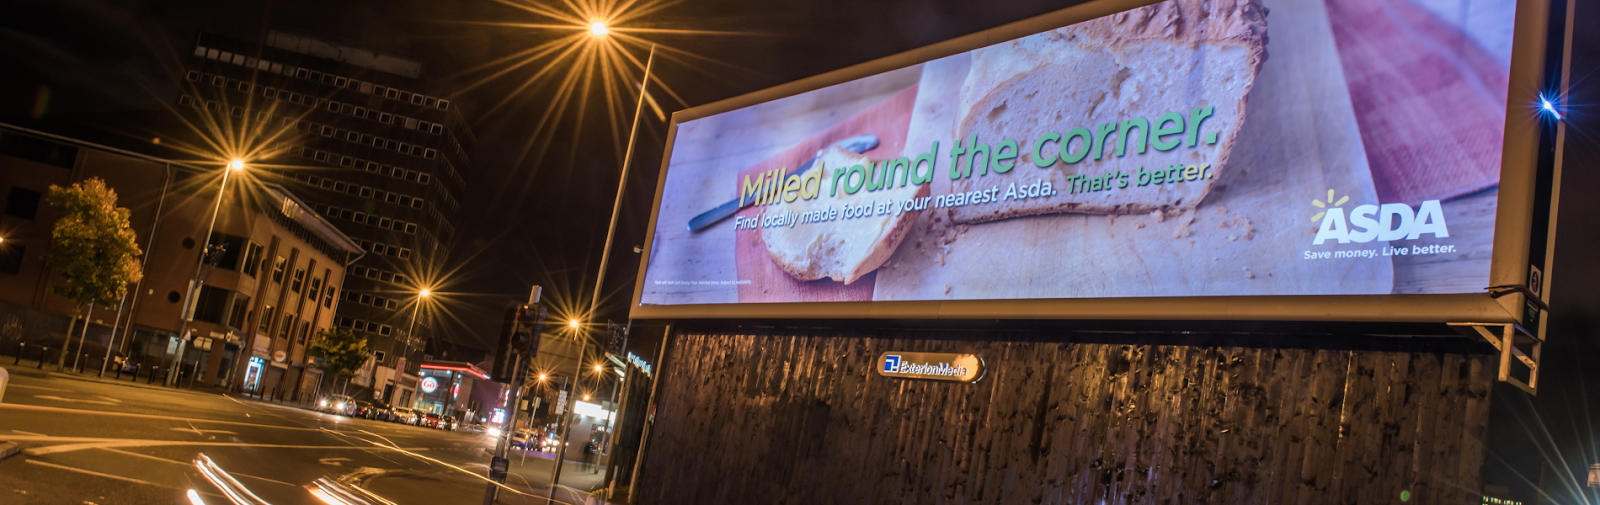 ASDA used OOH to promote locally made produce 'right around the corner' for a hyper-local advertising campaign.